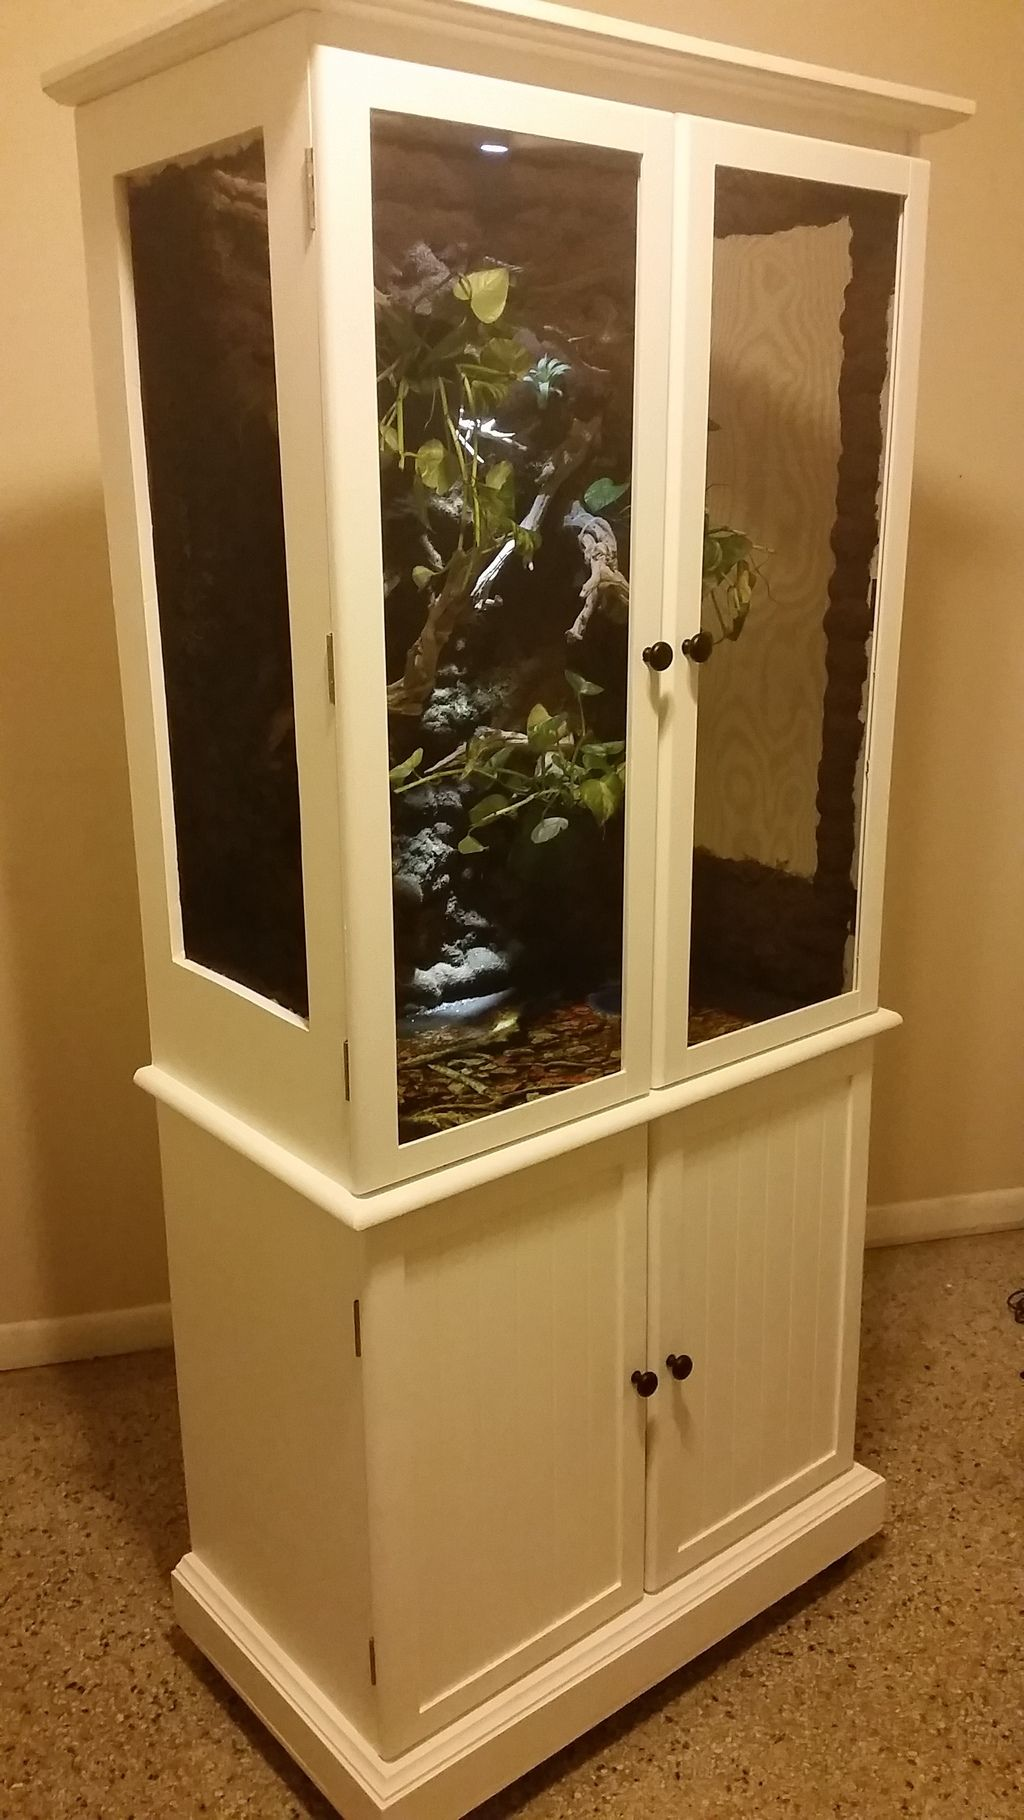 Side view with doors closed of almost completed Chameleon vivarium. & Side view with doors closed of almost completed Chameleon vivarium ... Pezcame.Com